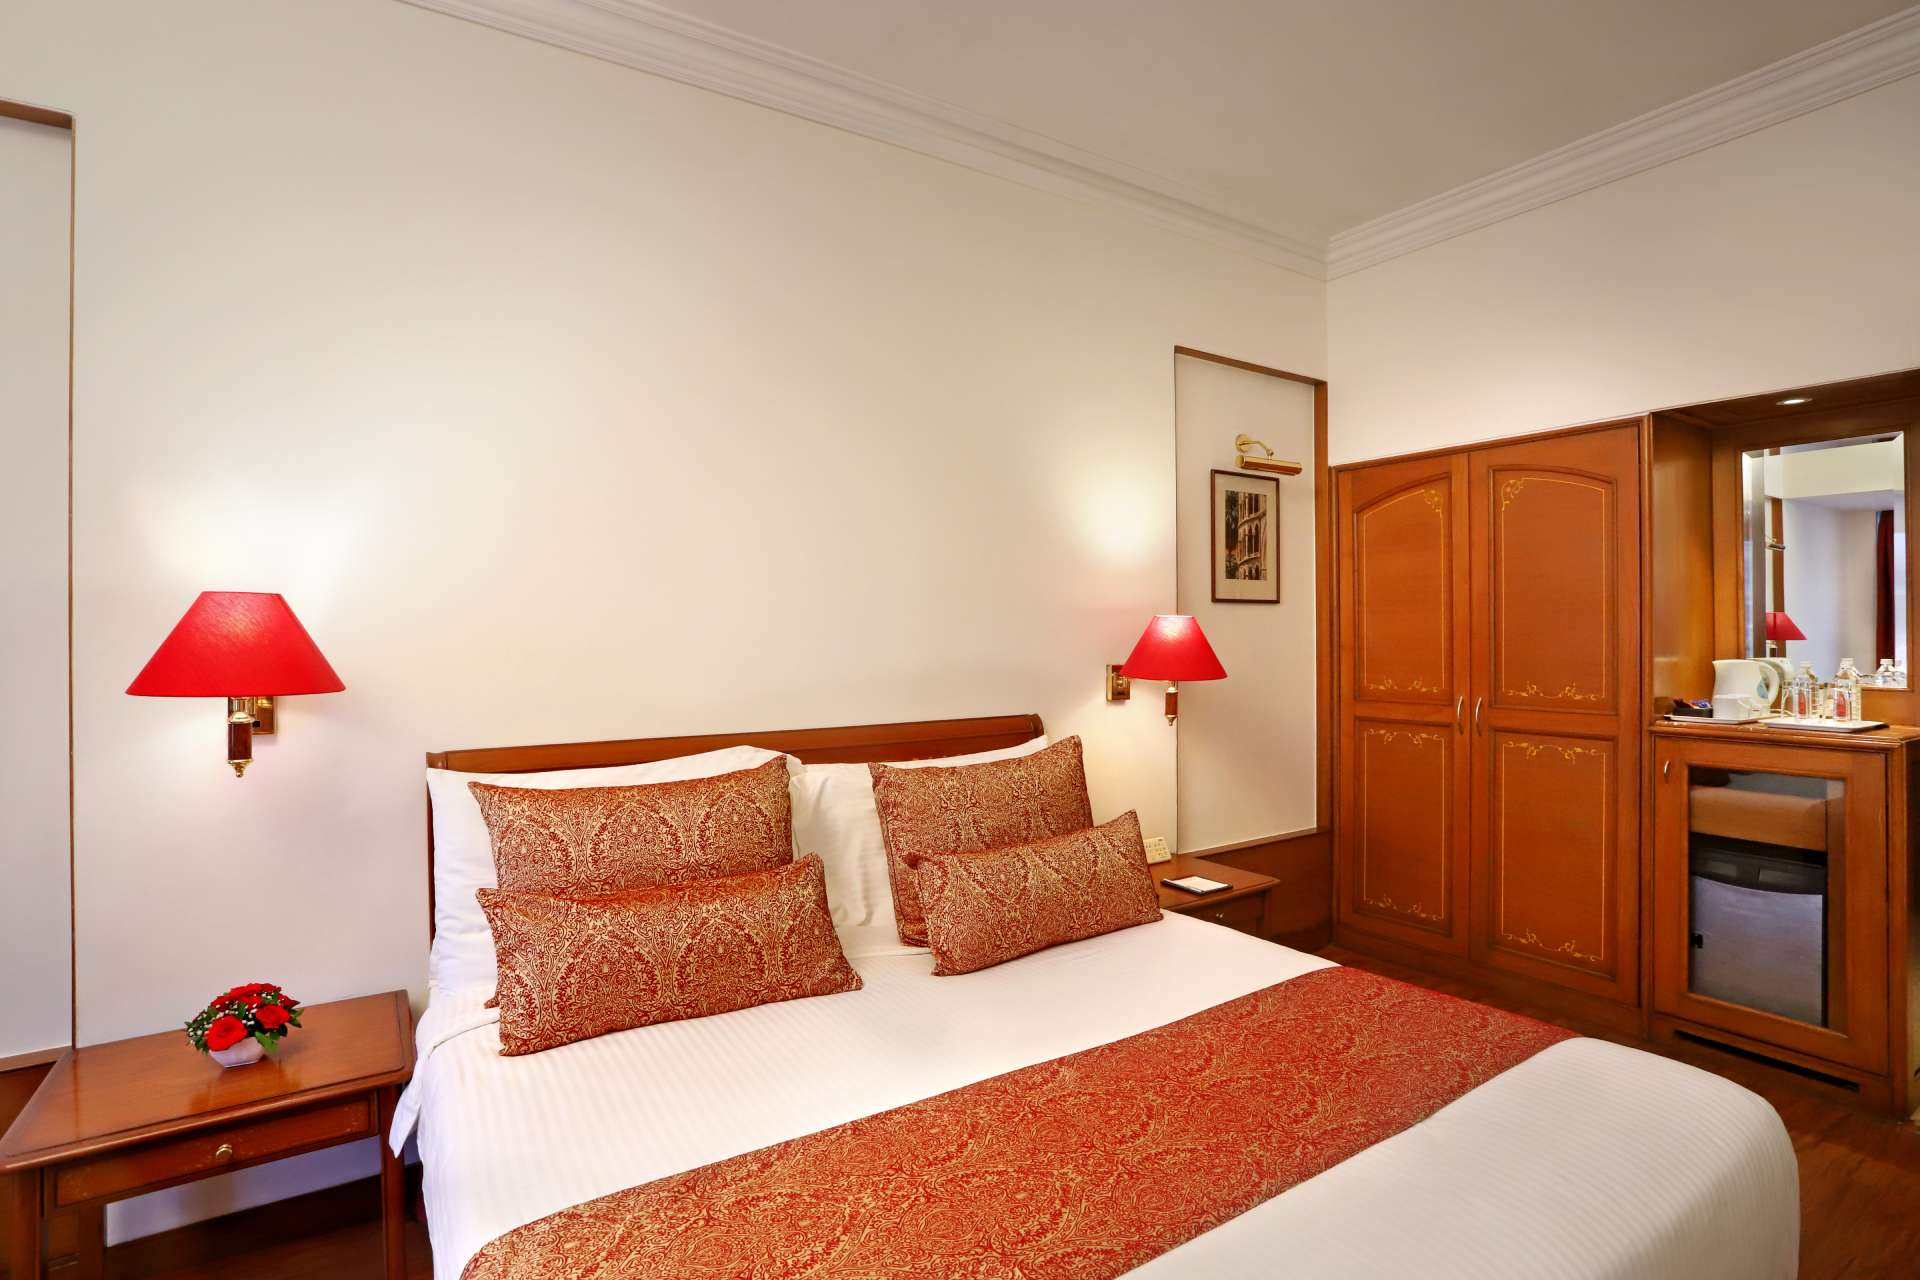 the ambassador executive room 3 - The Ambassador | Heritage Hotels in Mumbai, Aurangabad, Chennai - Executive Room